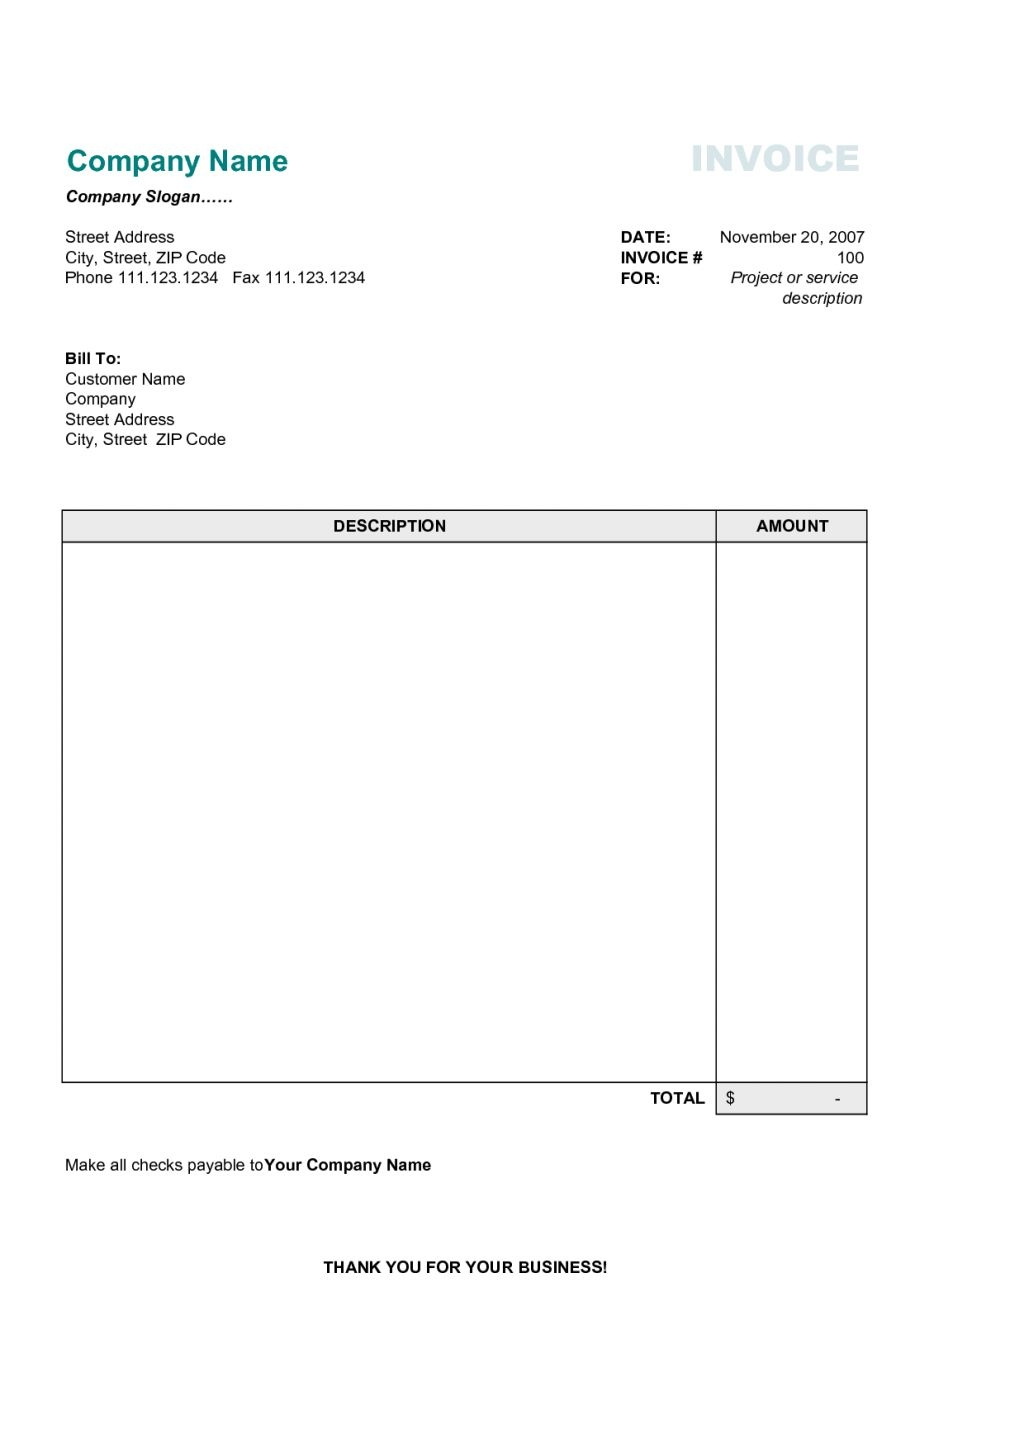 free printable business invoices invoice sample blank invoice editable invoice template blank 1024 X 1448